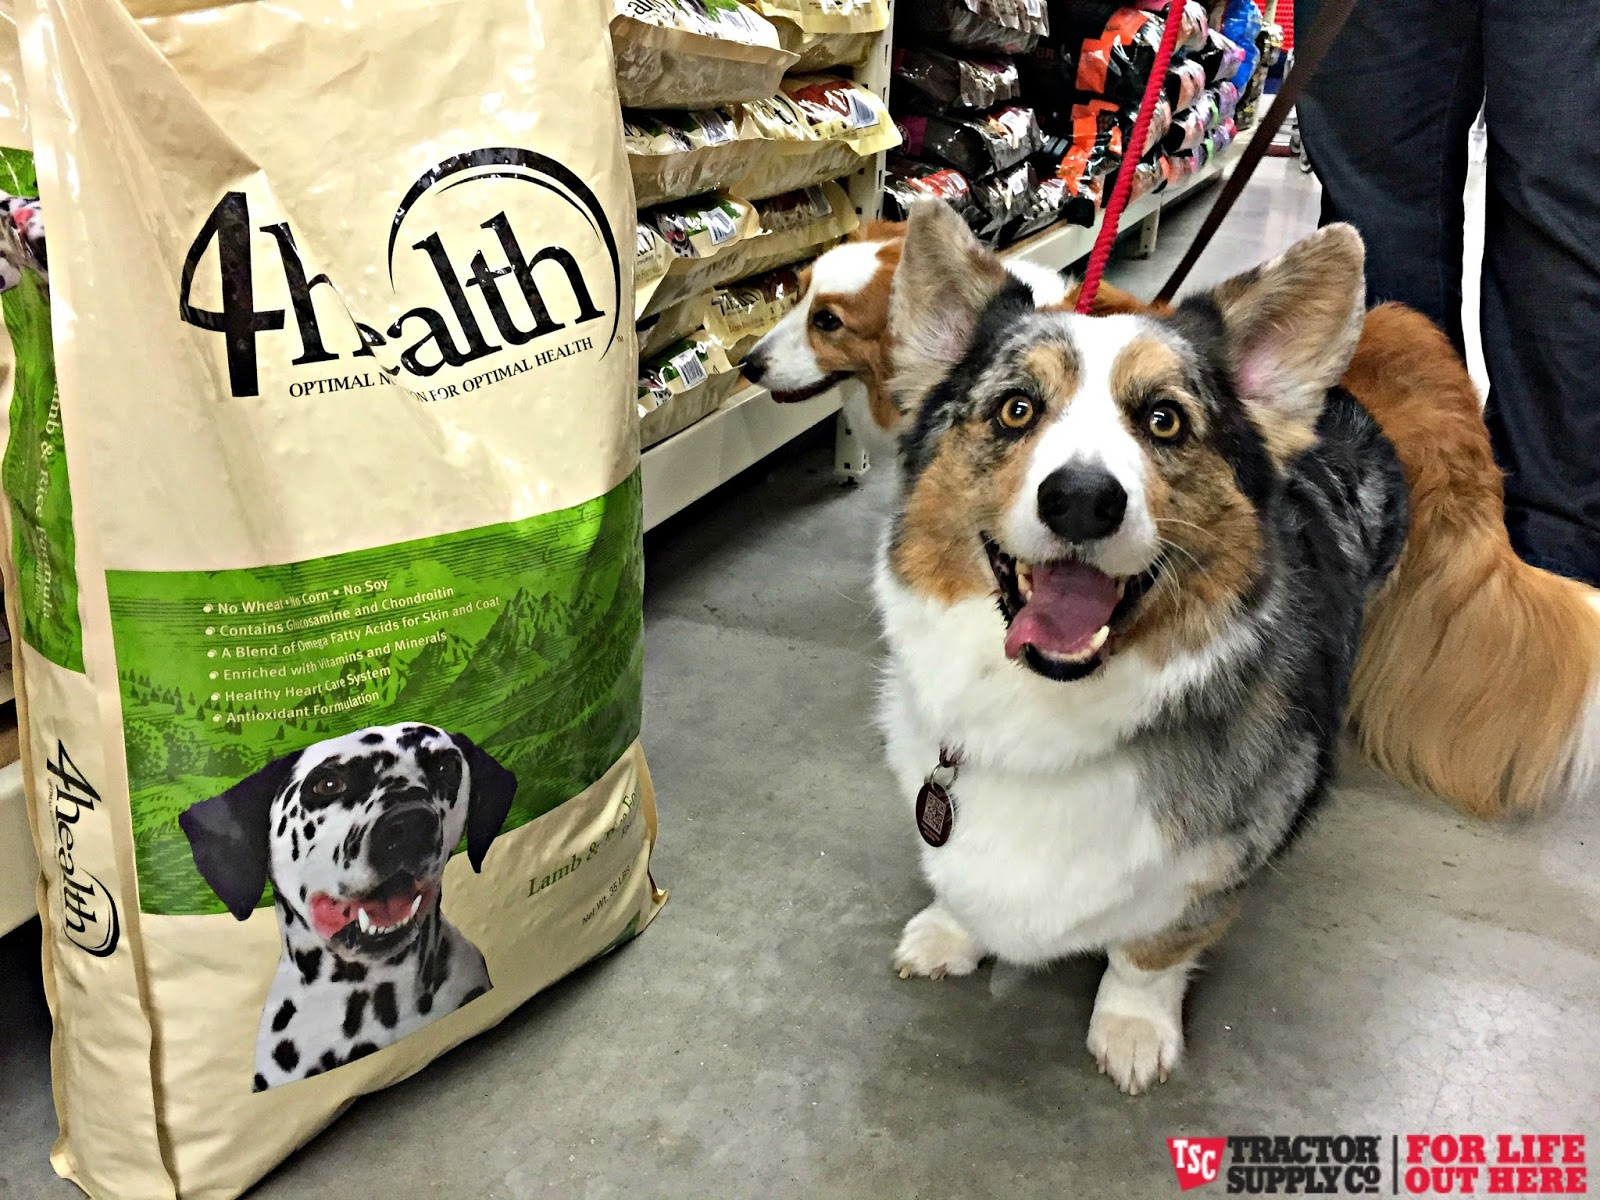 Is Great Life Pet Food Sold In Stores